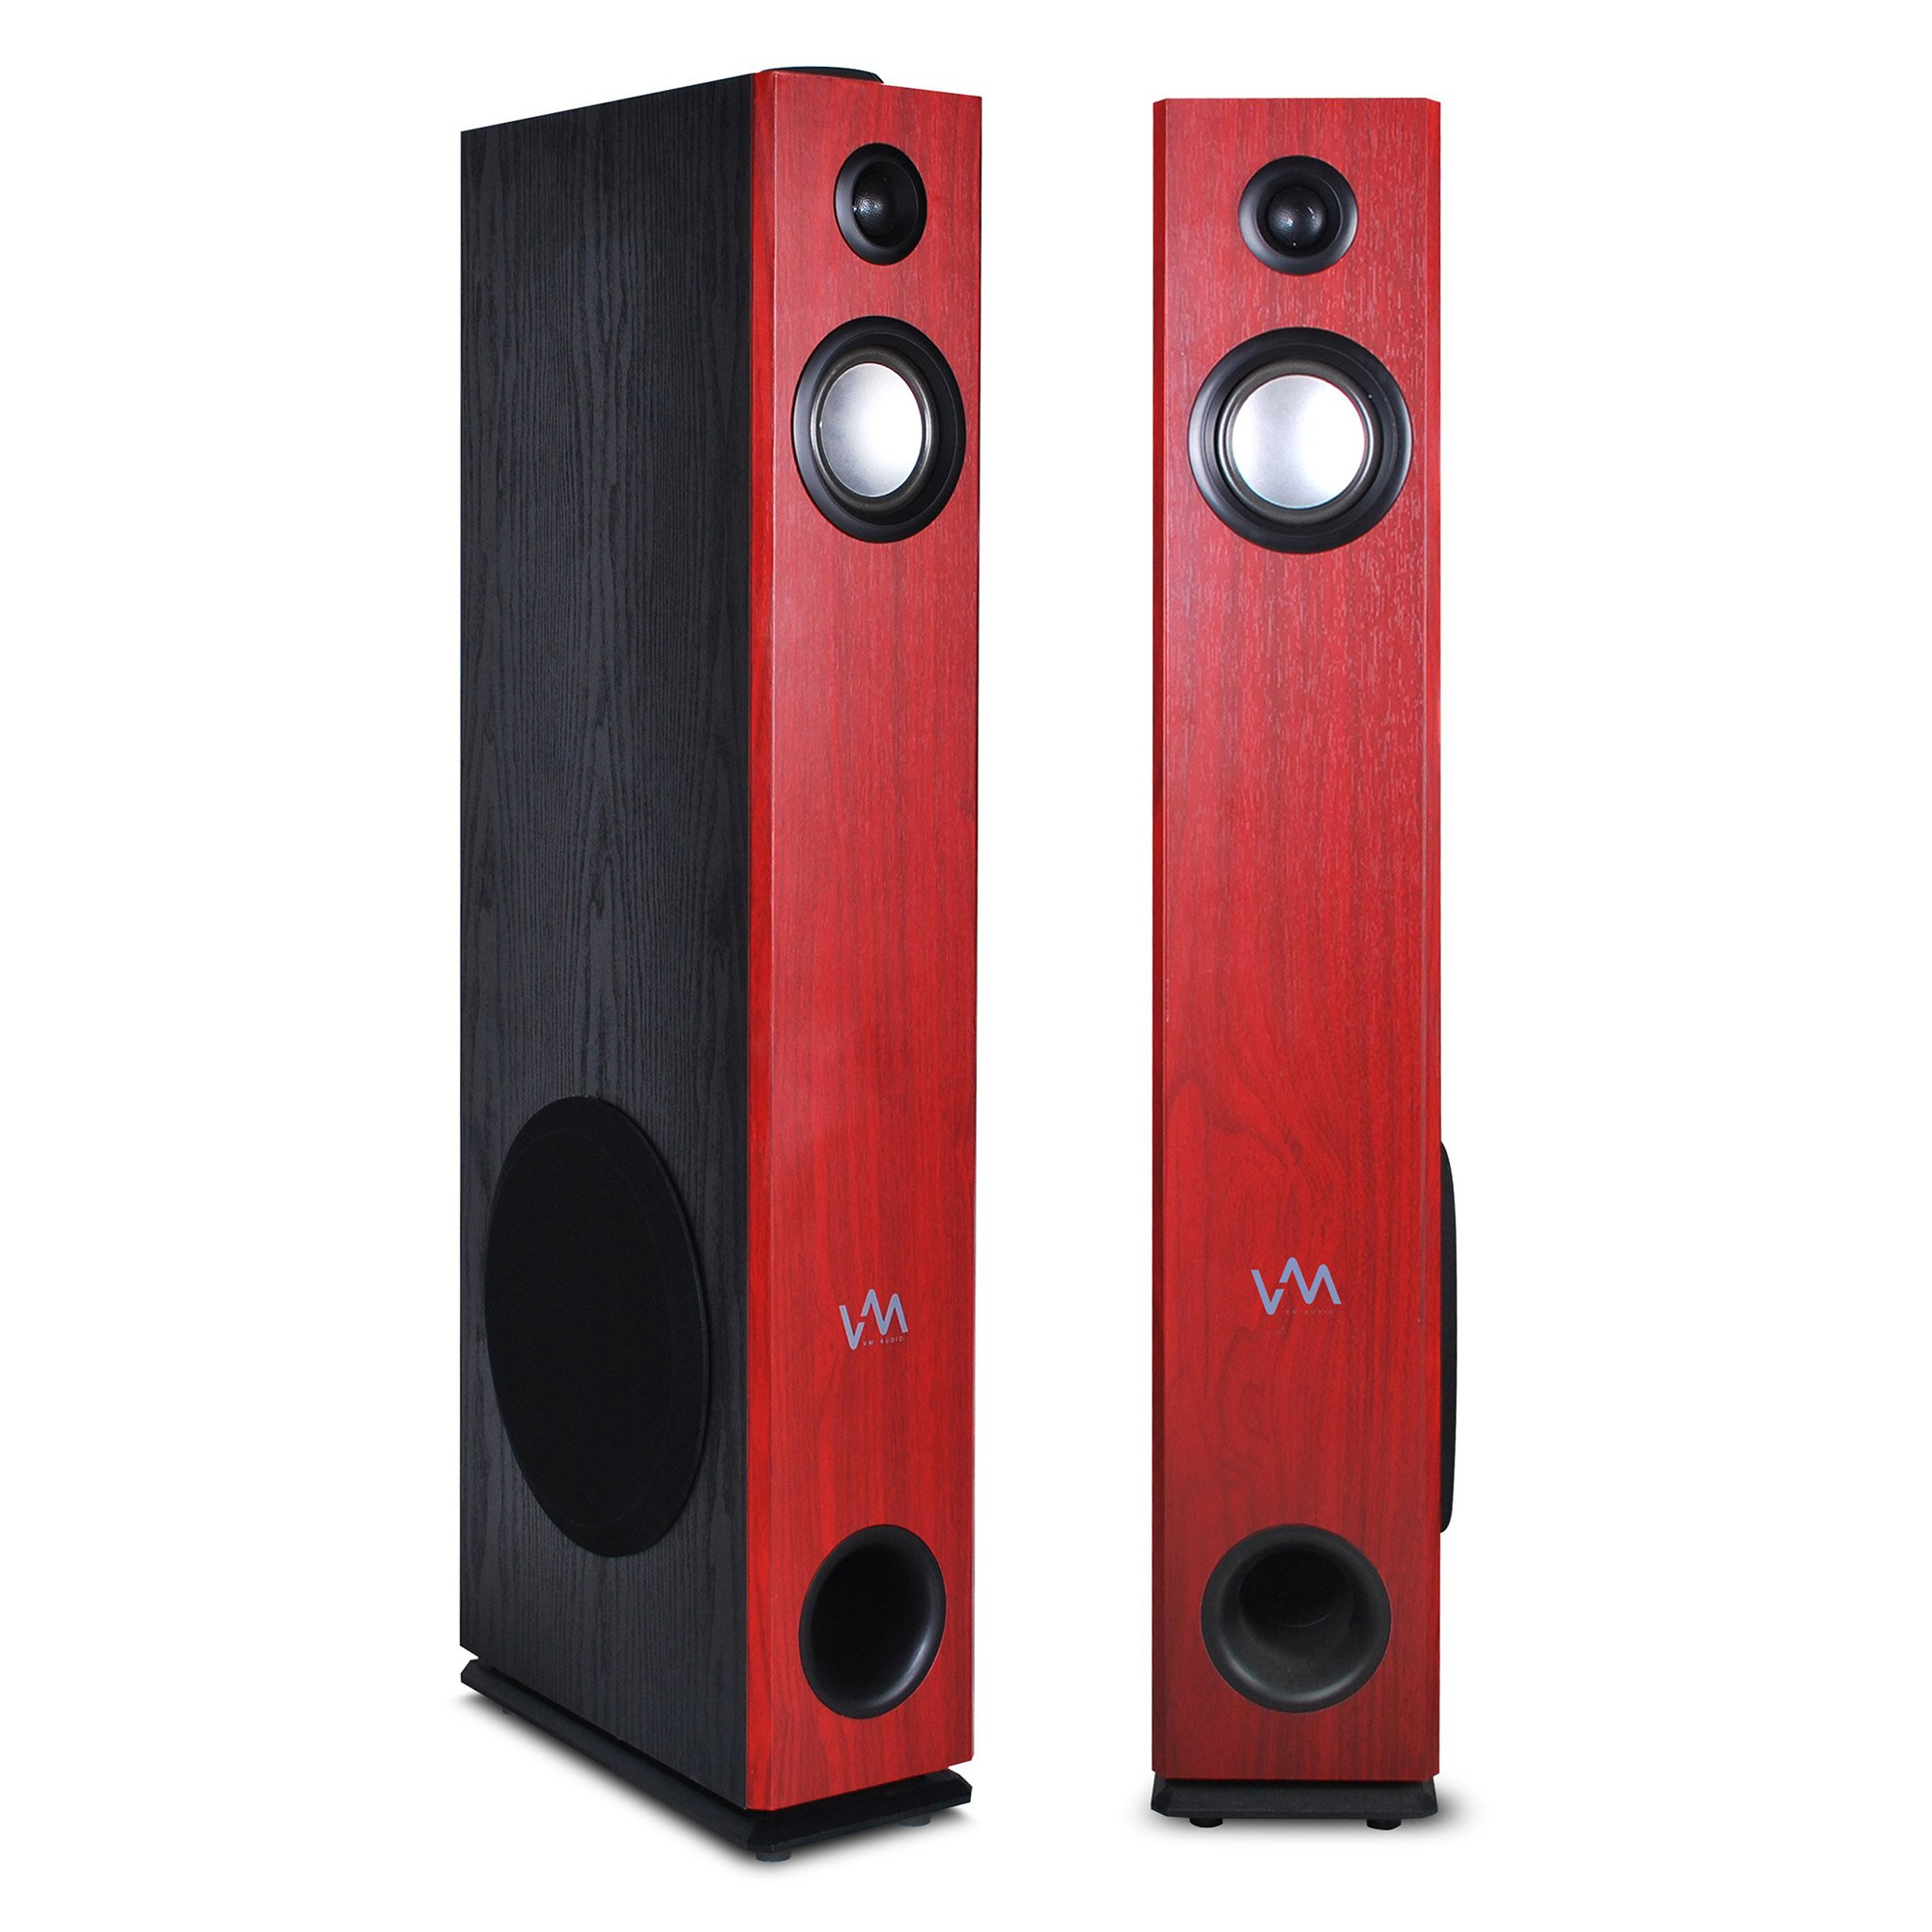 VM Audio Cherry Floorstanding Powered Bluetooth Tower Speakers, Pair | EXAT10